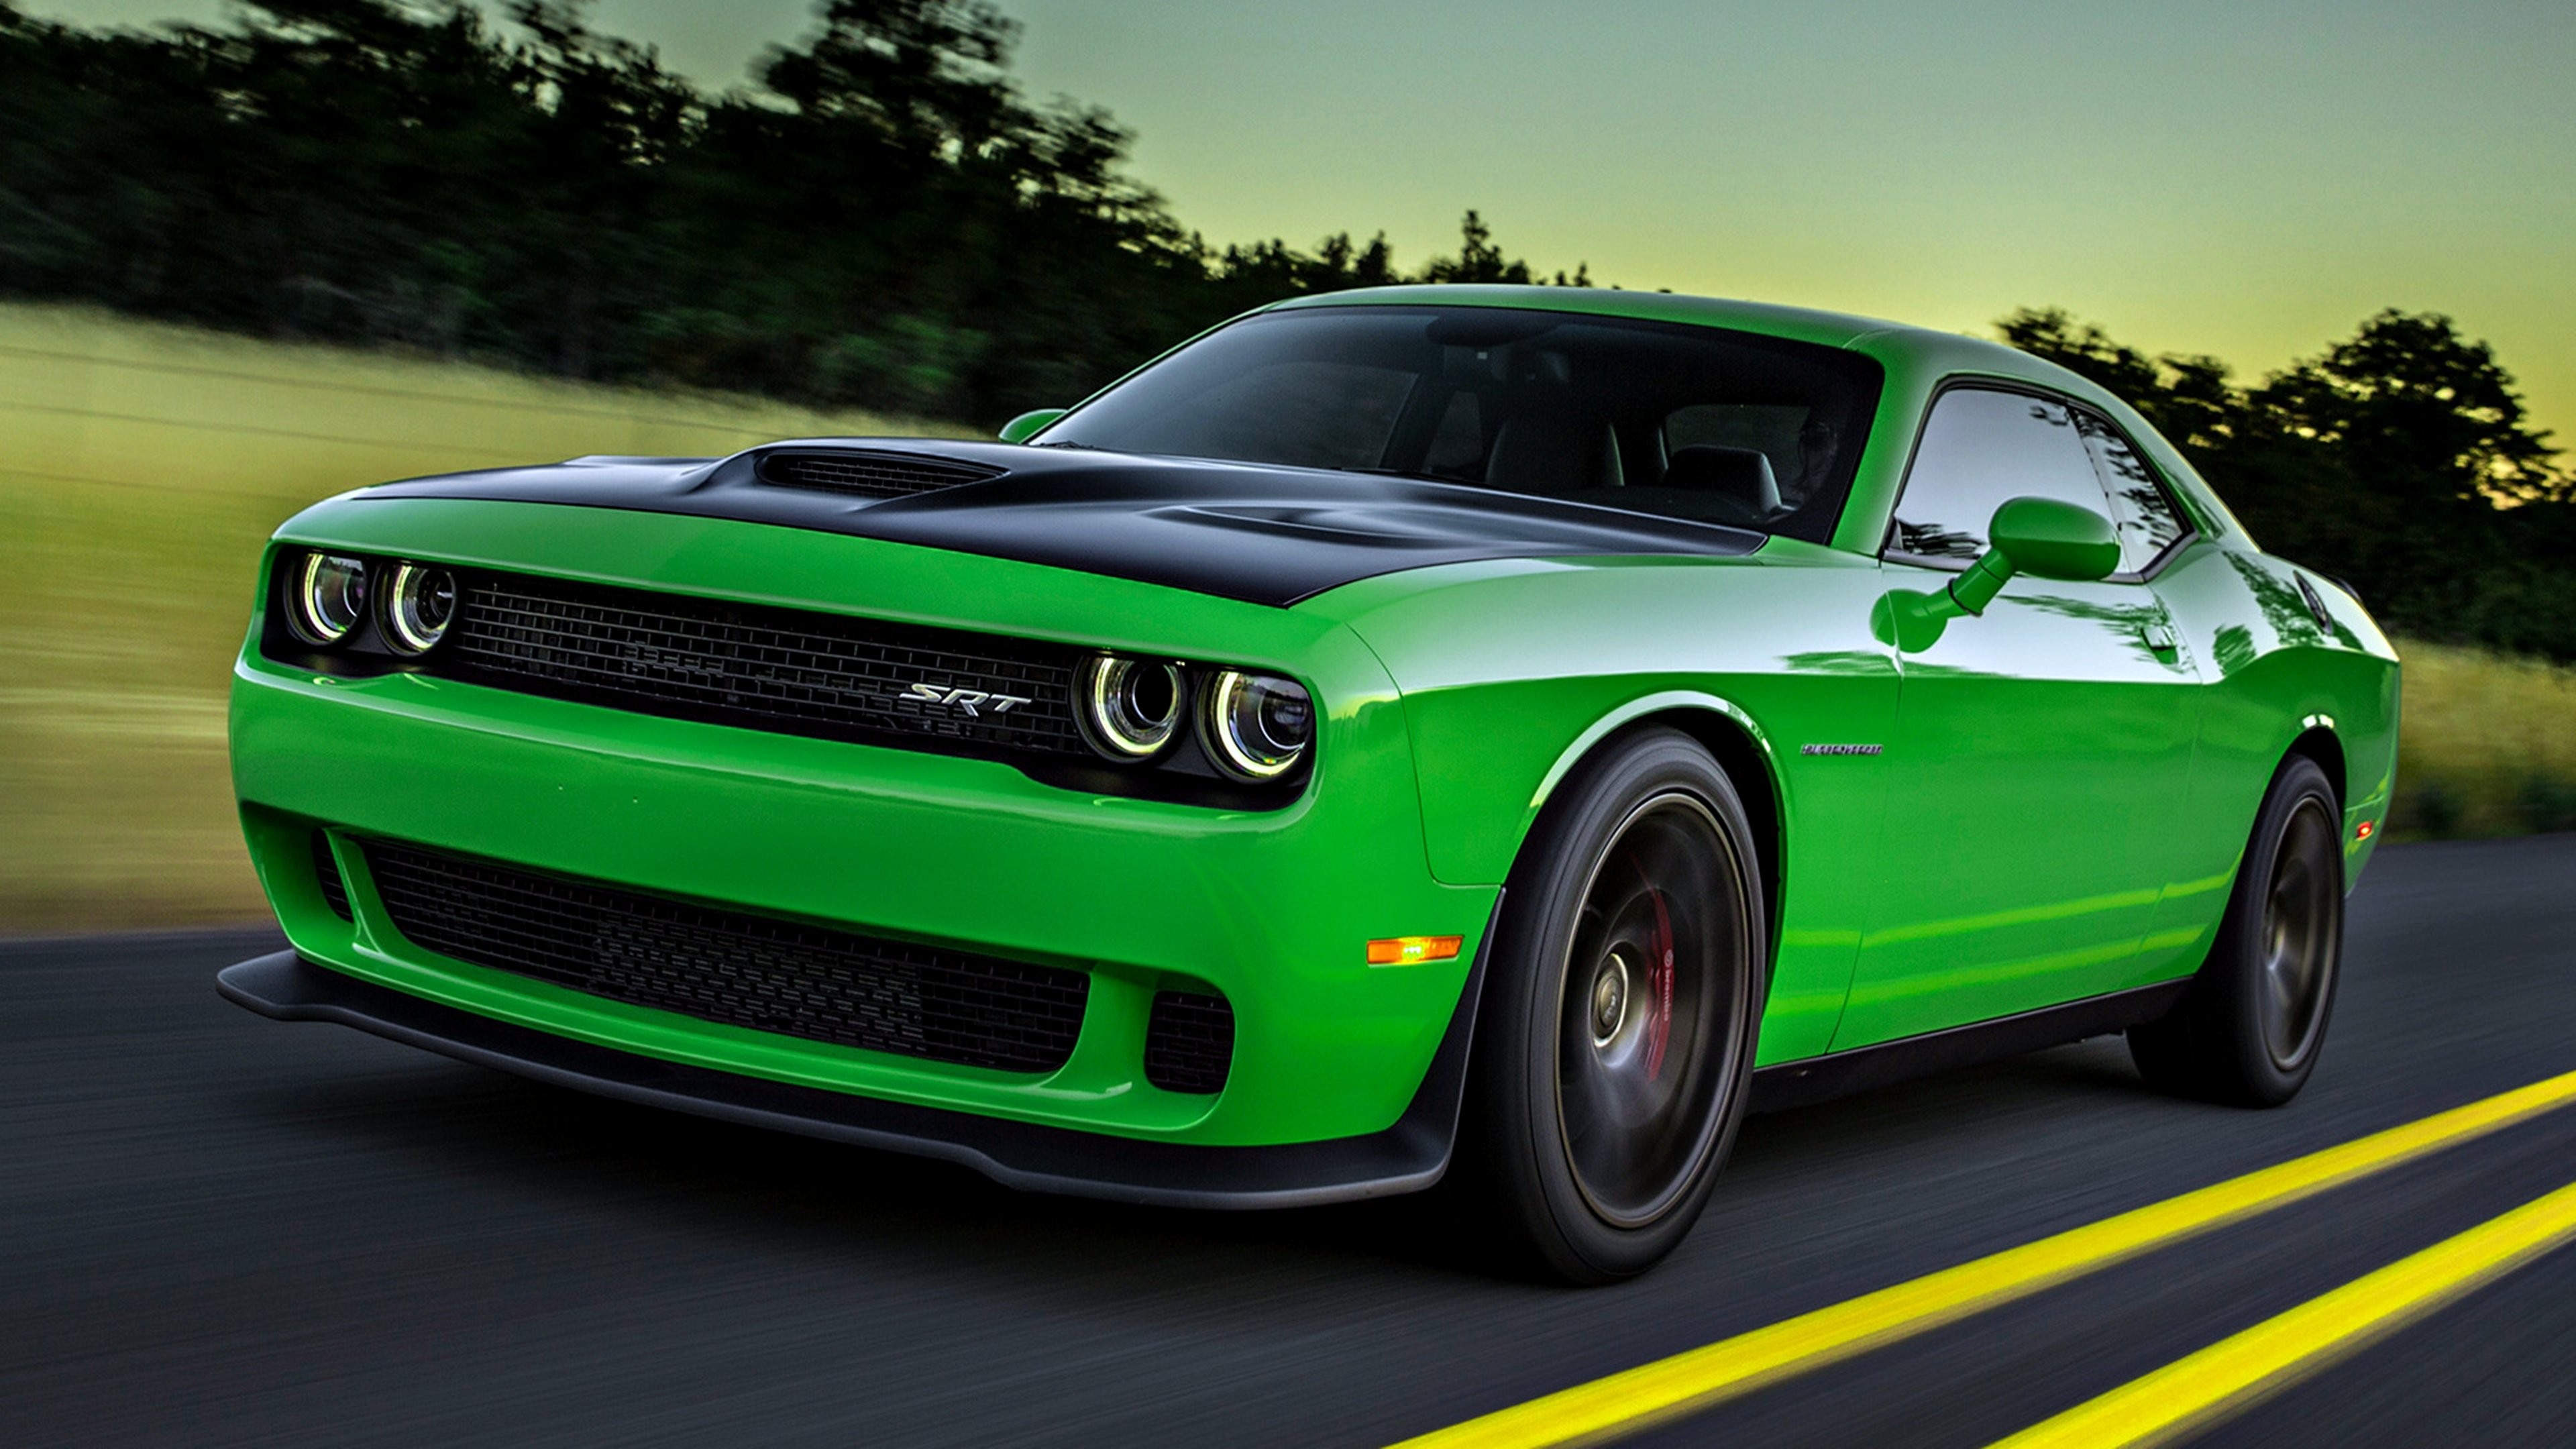 Green Car Wallpapers 3840x2160 Ultra Hd 4k Desktop Backgrounds